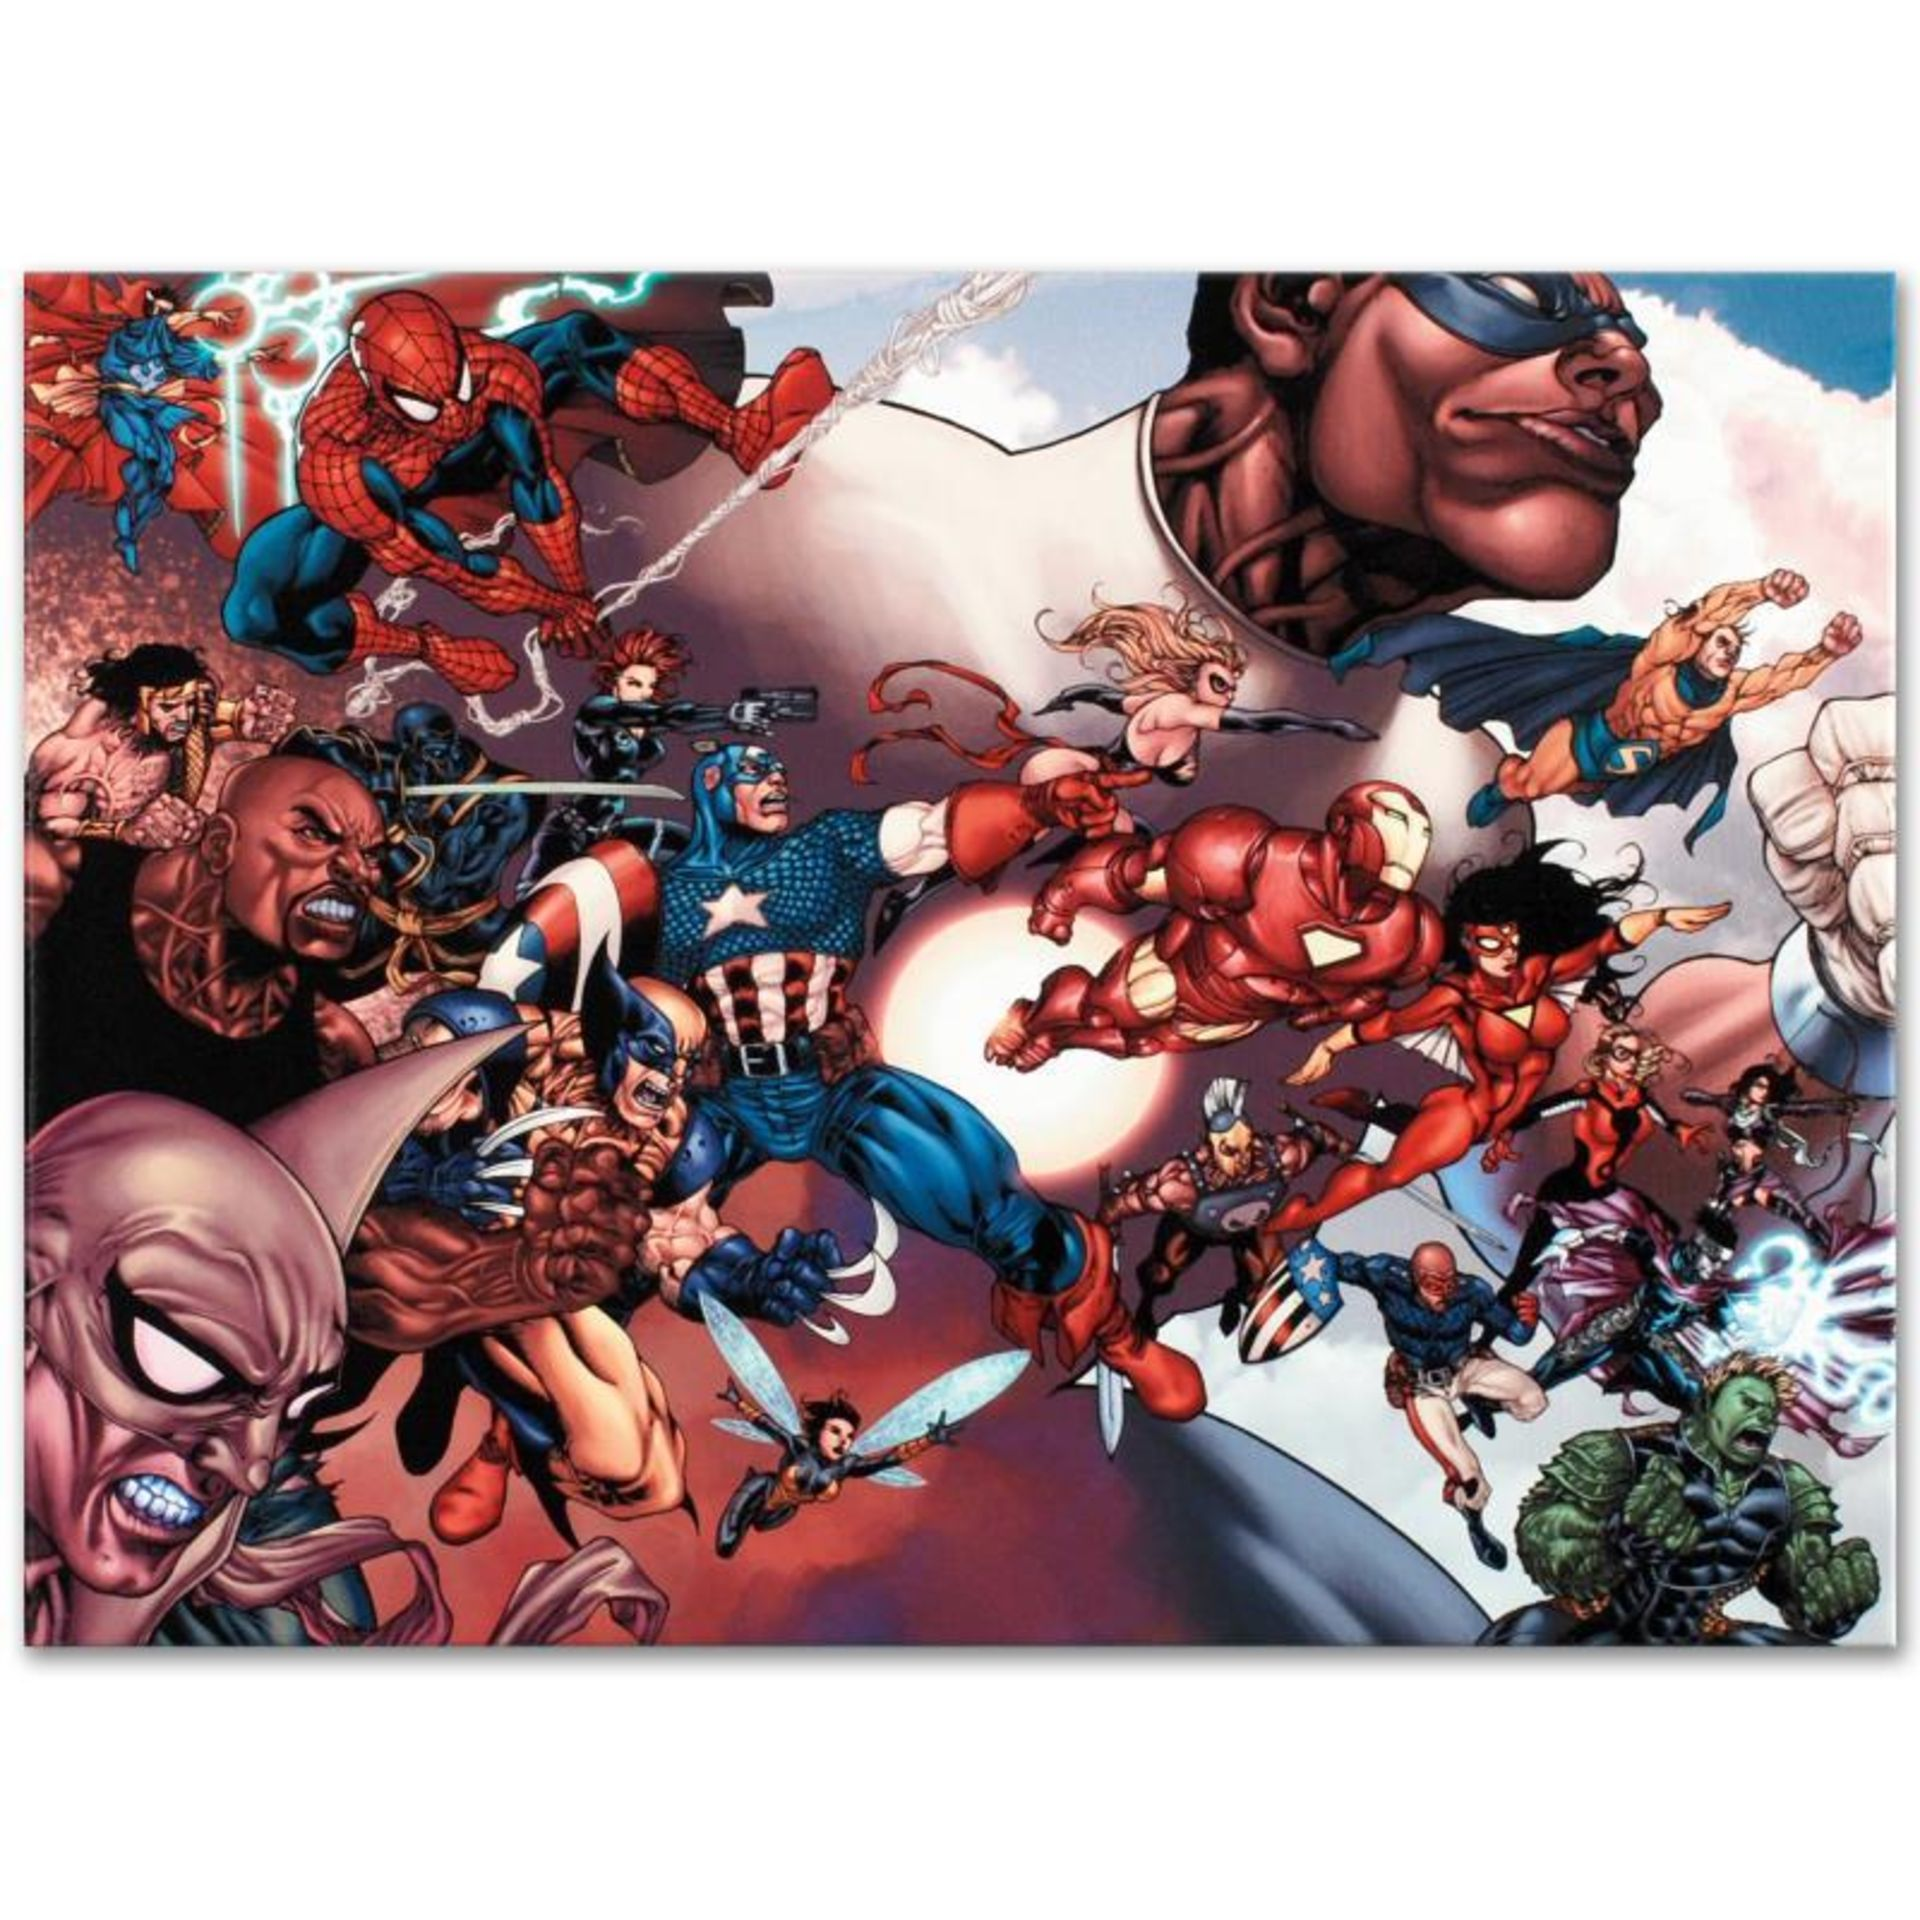 """Marvel Comics """"What If? Civil War #1"""" Numbered Limited Edition Giclee on Canvas"""